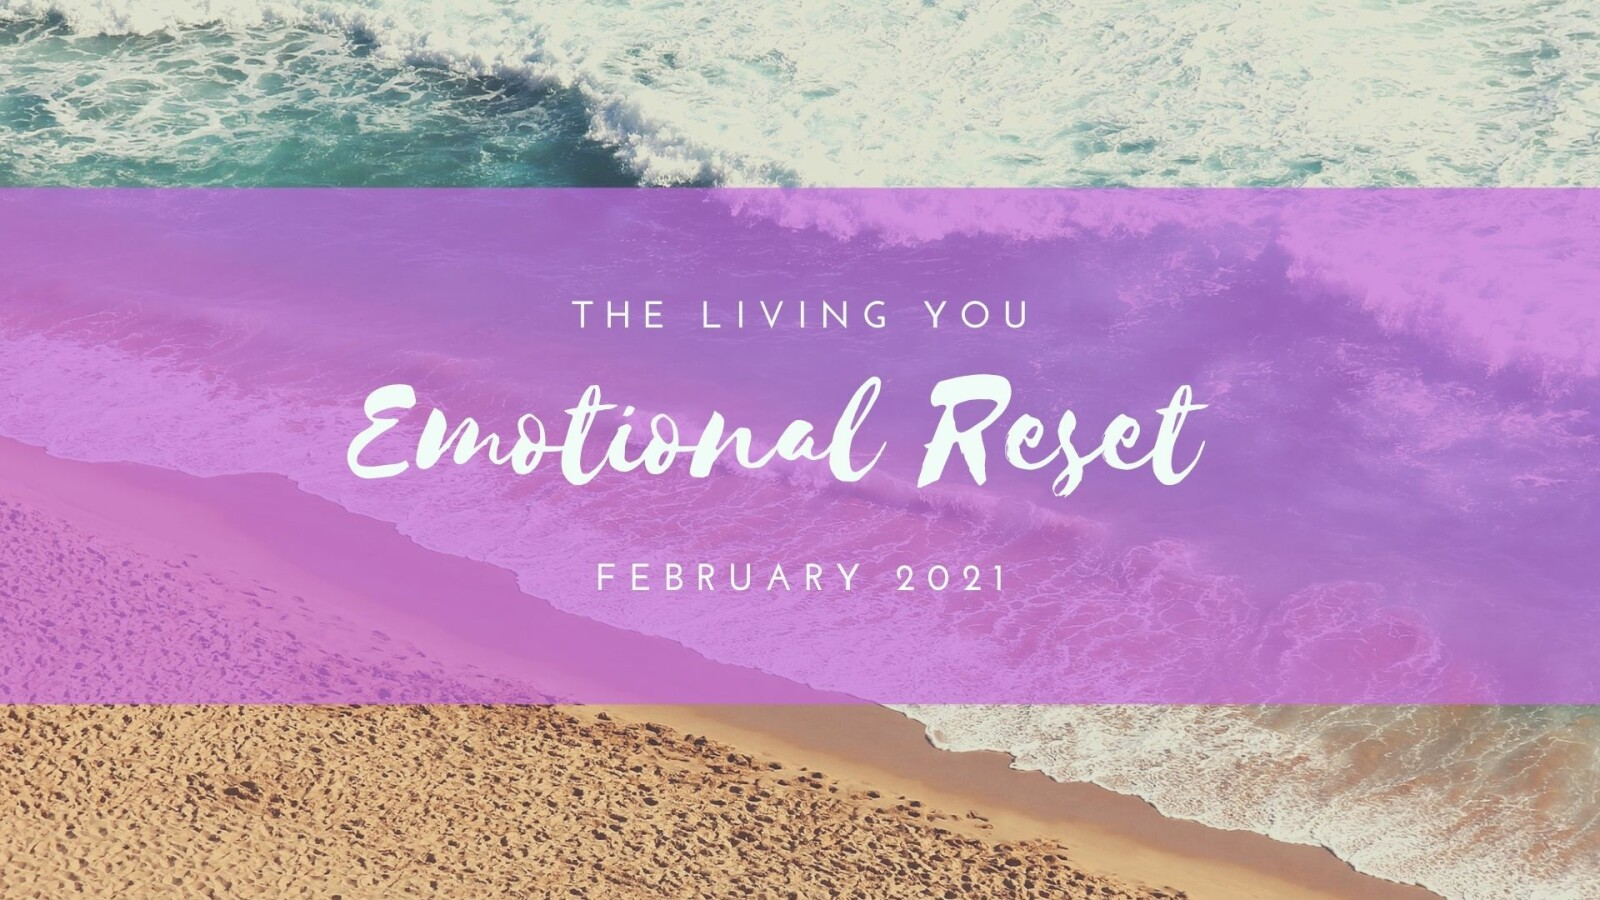 The Living You Emotional Reset